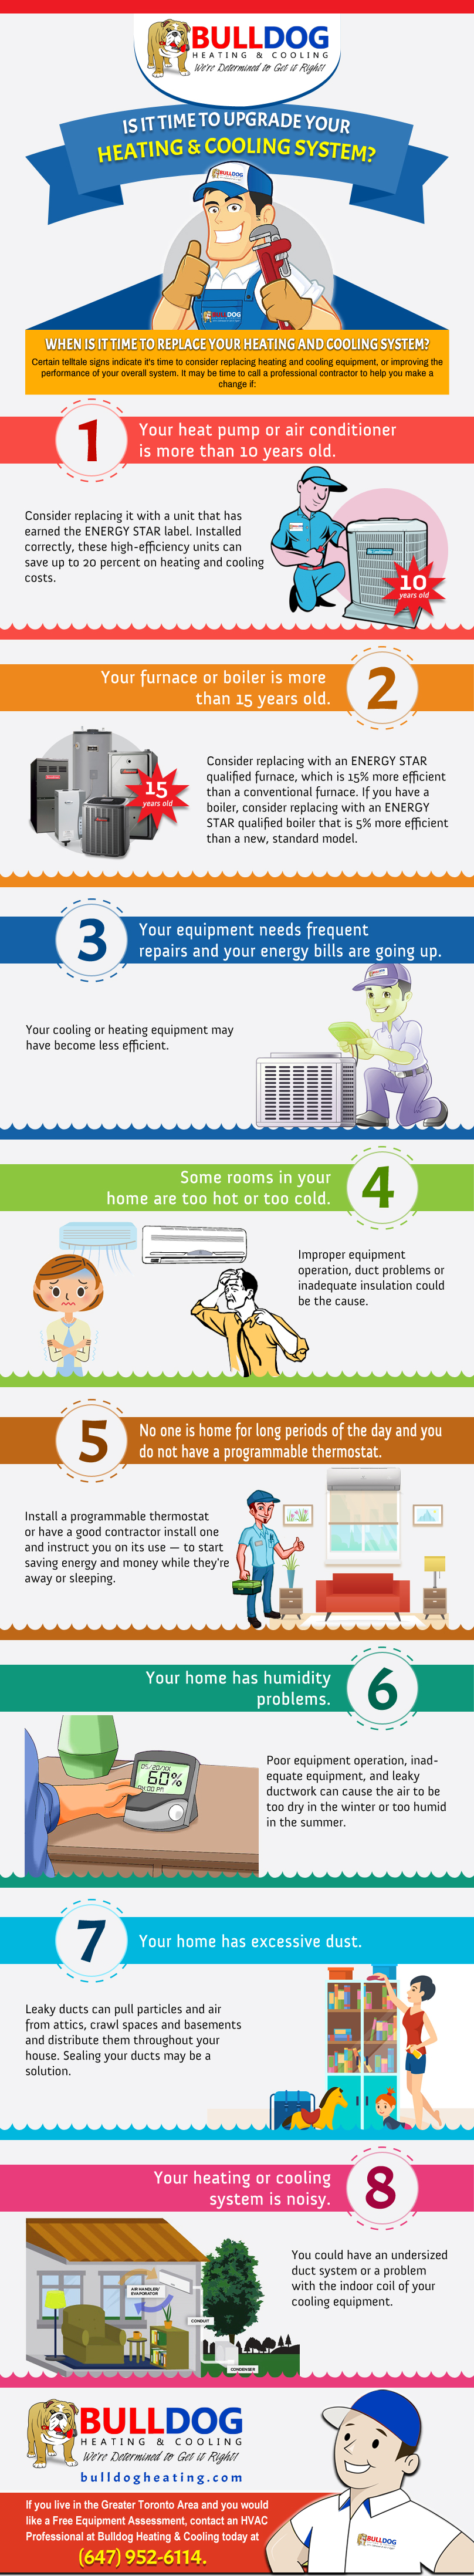 Time to Upgrade Your Heating and Cooling System?